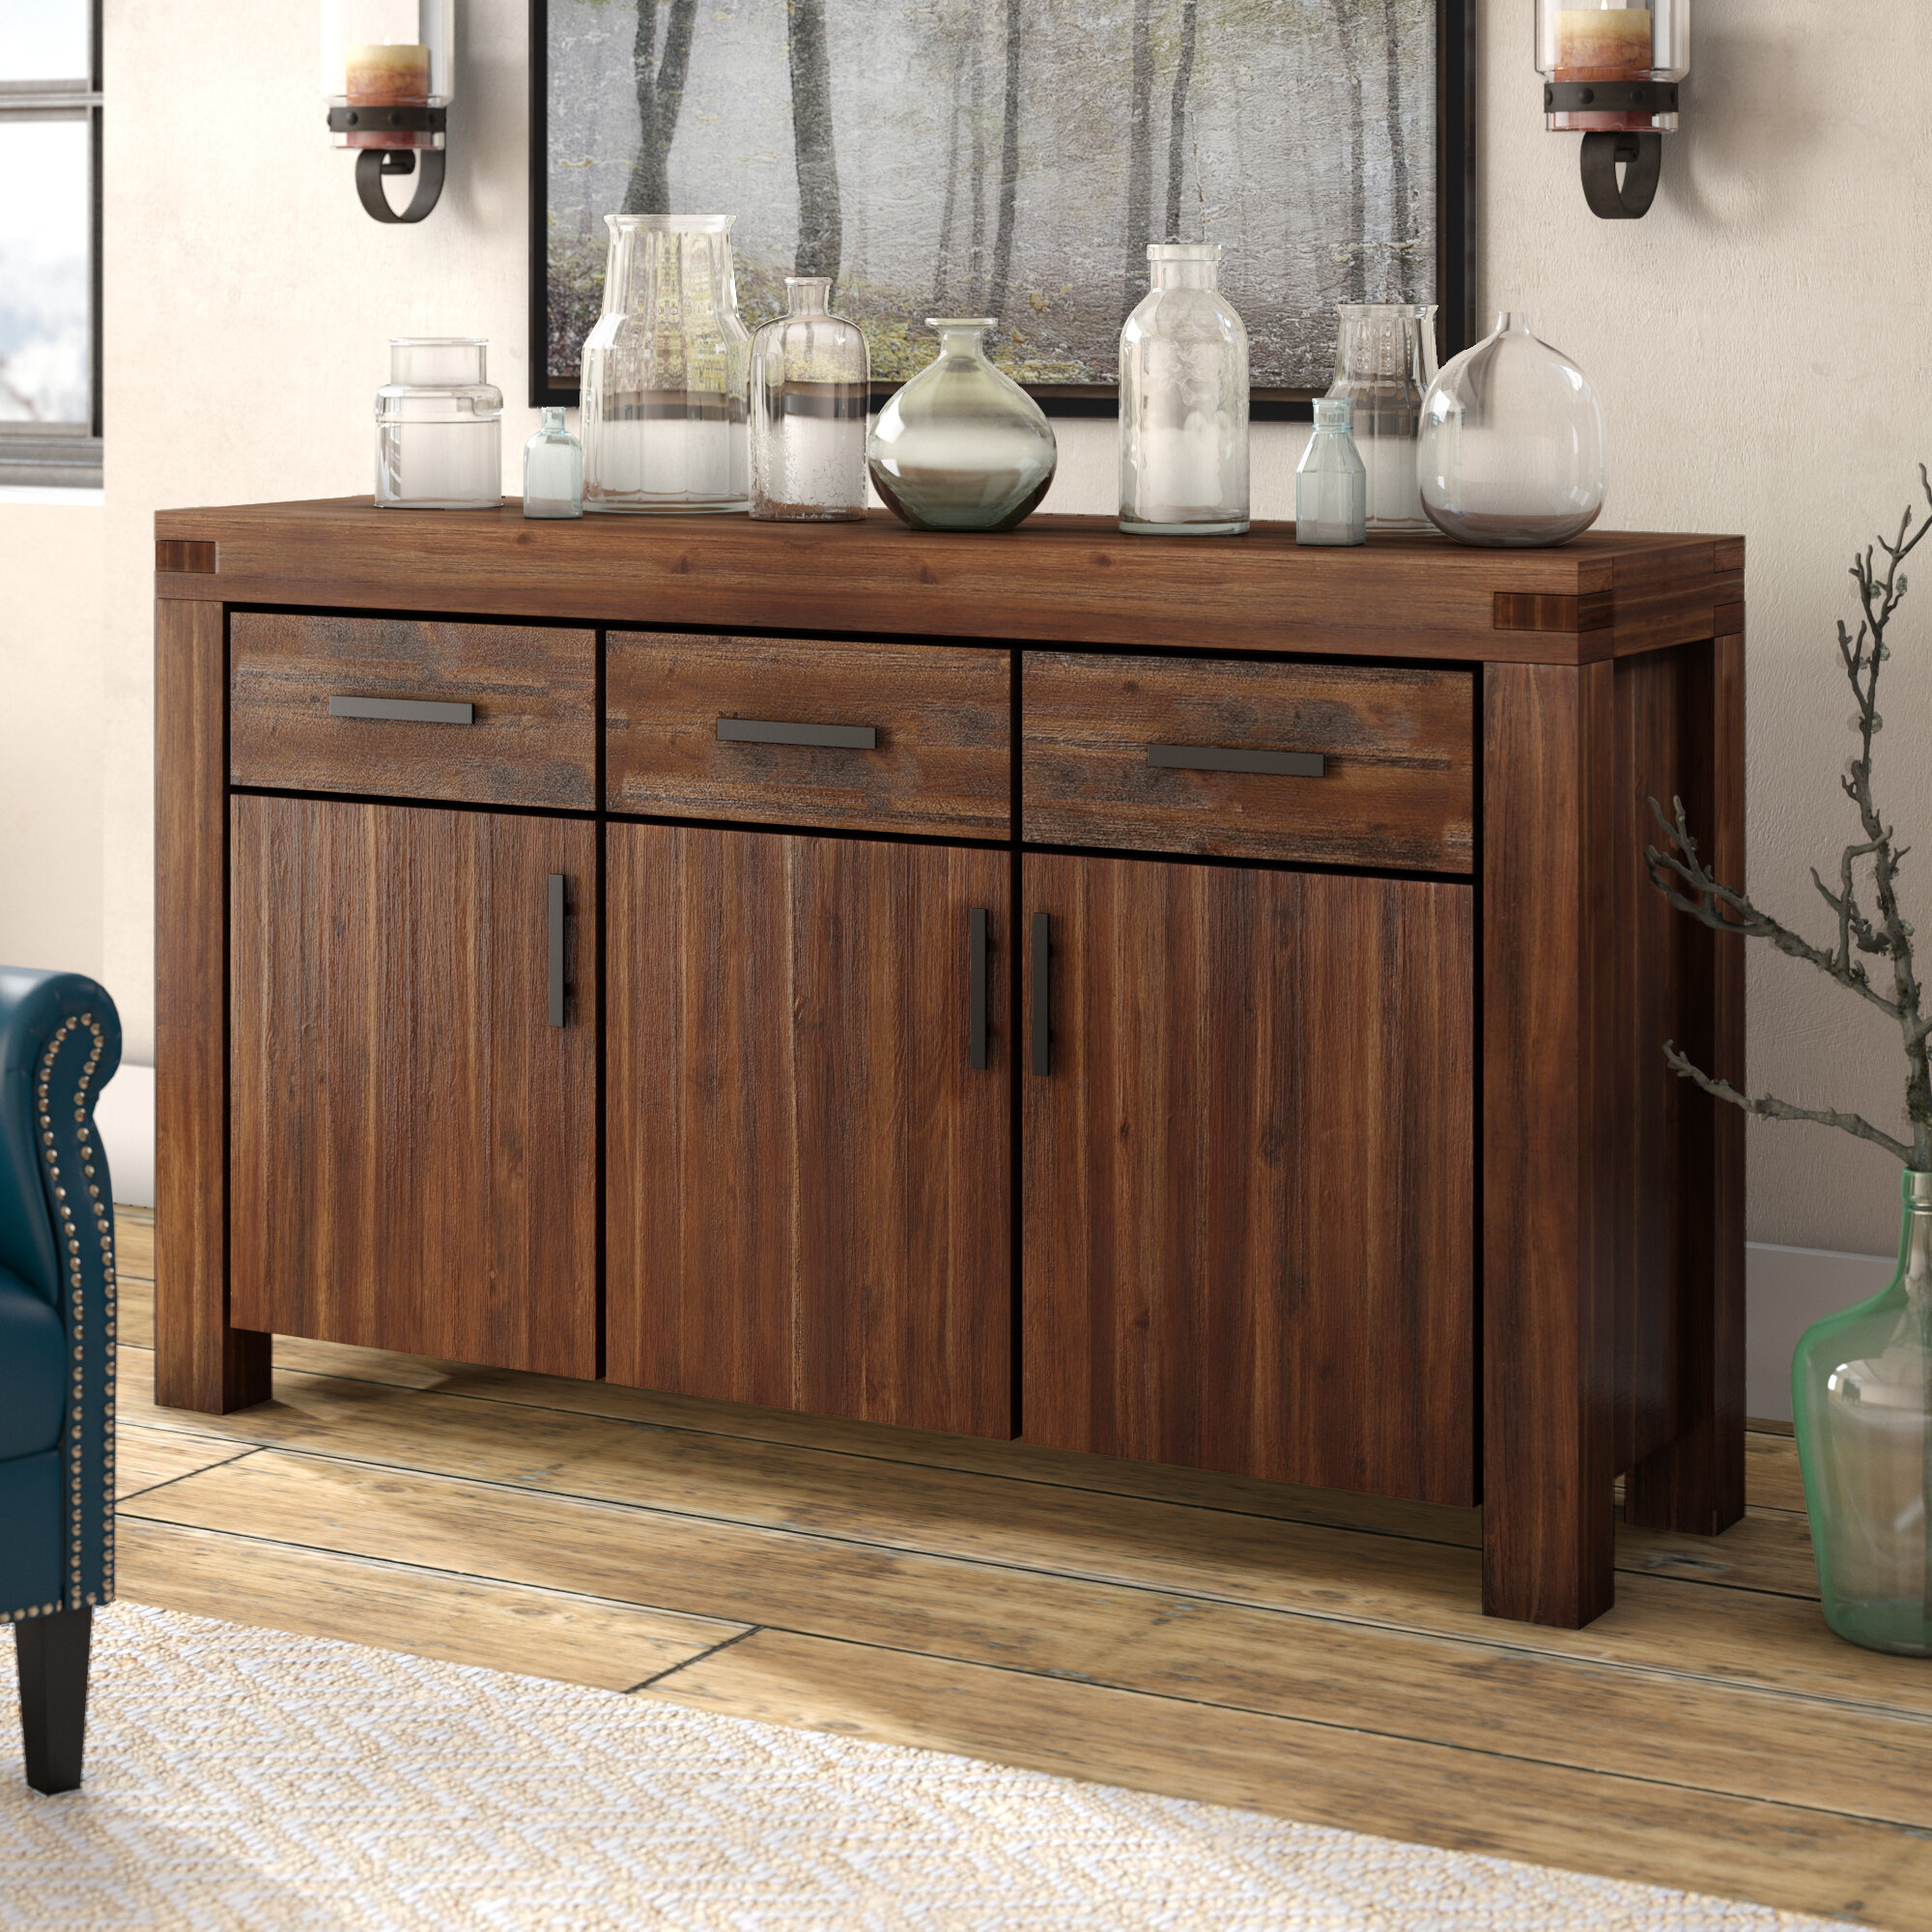 Gibson Sideboard Throughout Saint Gratien Sideboards (View 10 of 30)